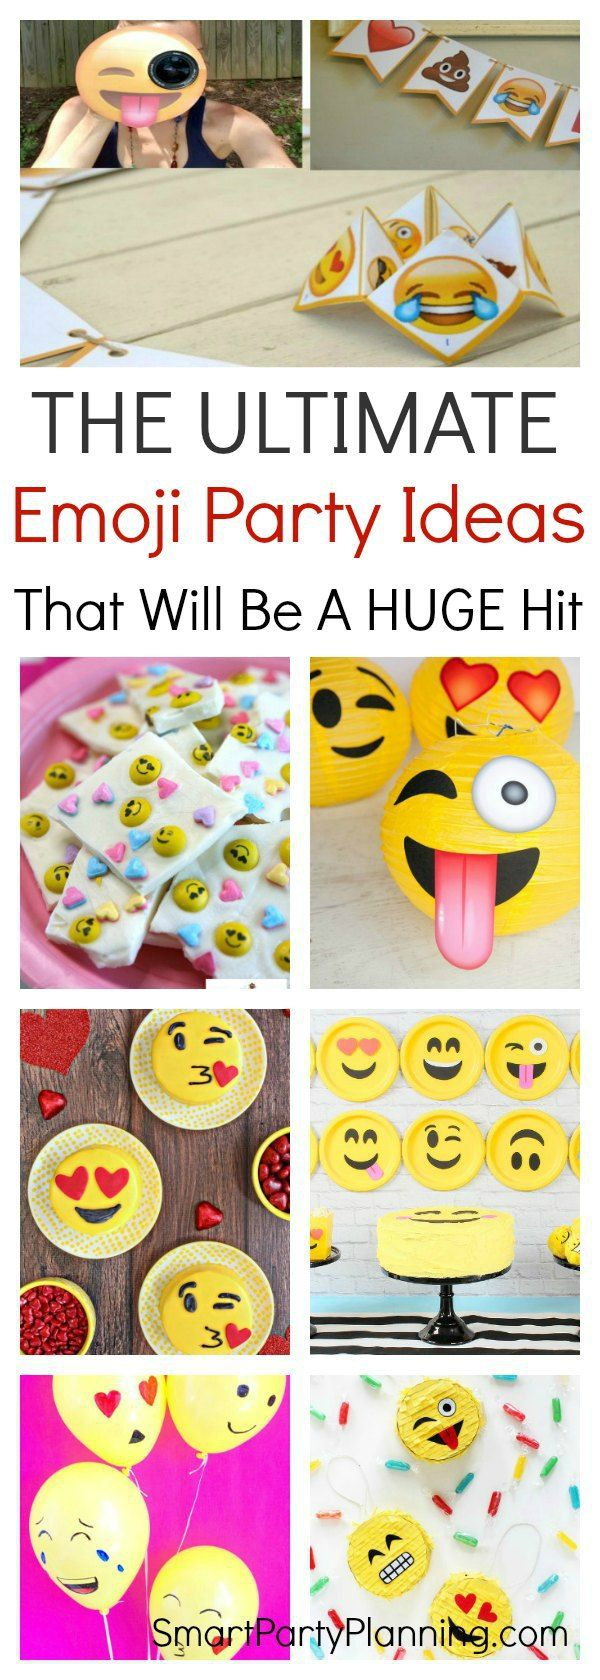 Try these 13 DIY emoji party ideas to create the ultimate emoji party. There are ideas for themed food, free printable's, games and activities and take home party favors. Kids and adults alike are going to think that this party theme is awesome and everyone is going to have a whole lot of fun. #Emoji #Party #Kids #Party #Birthday